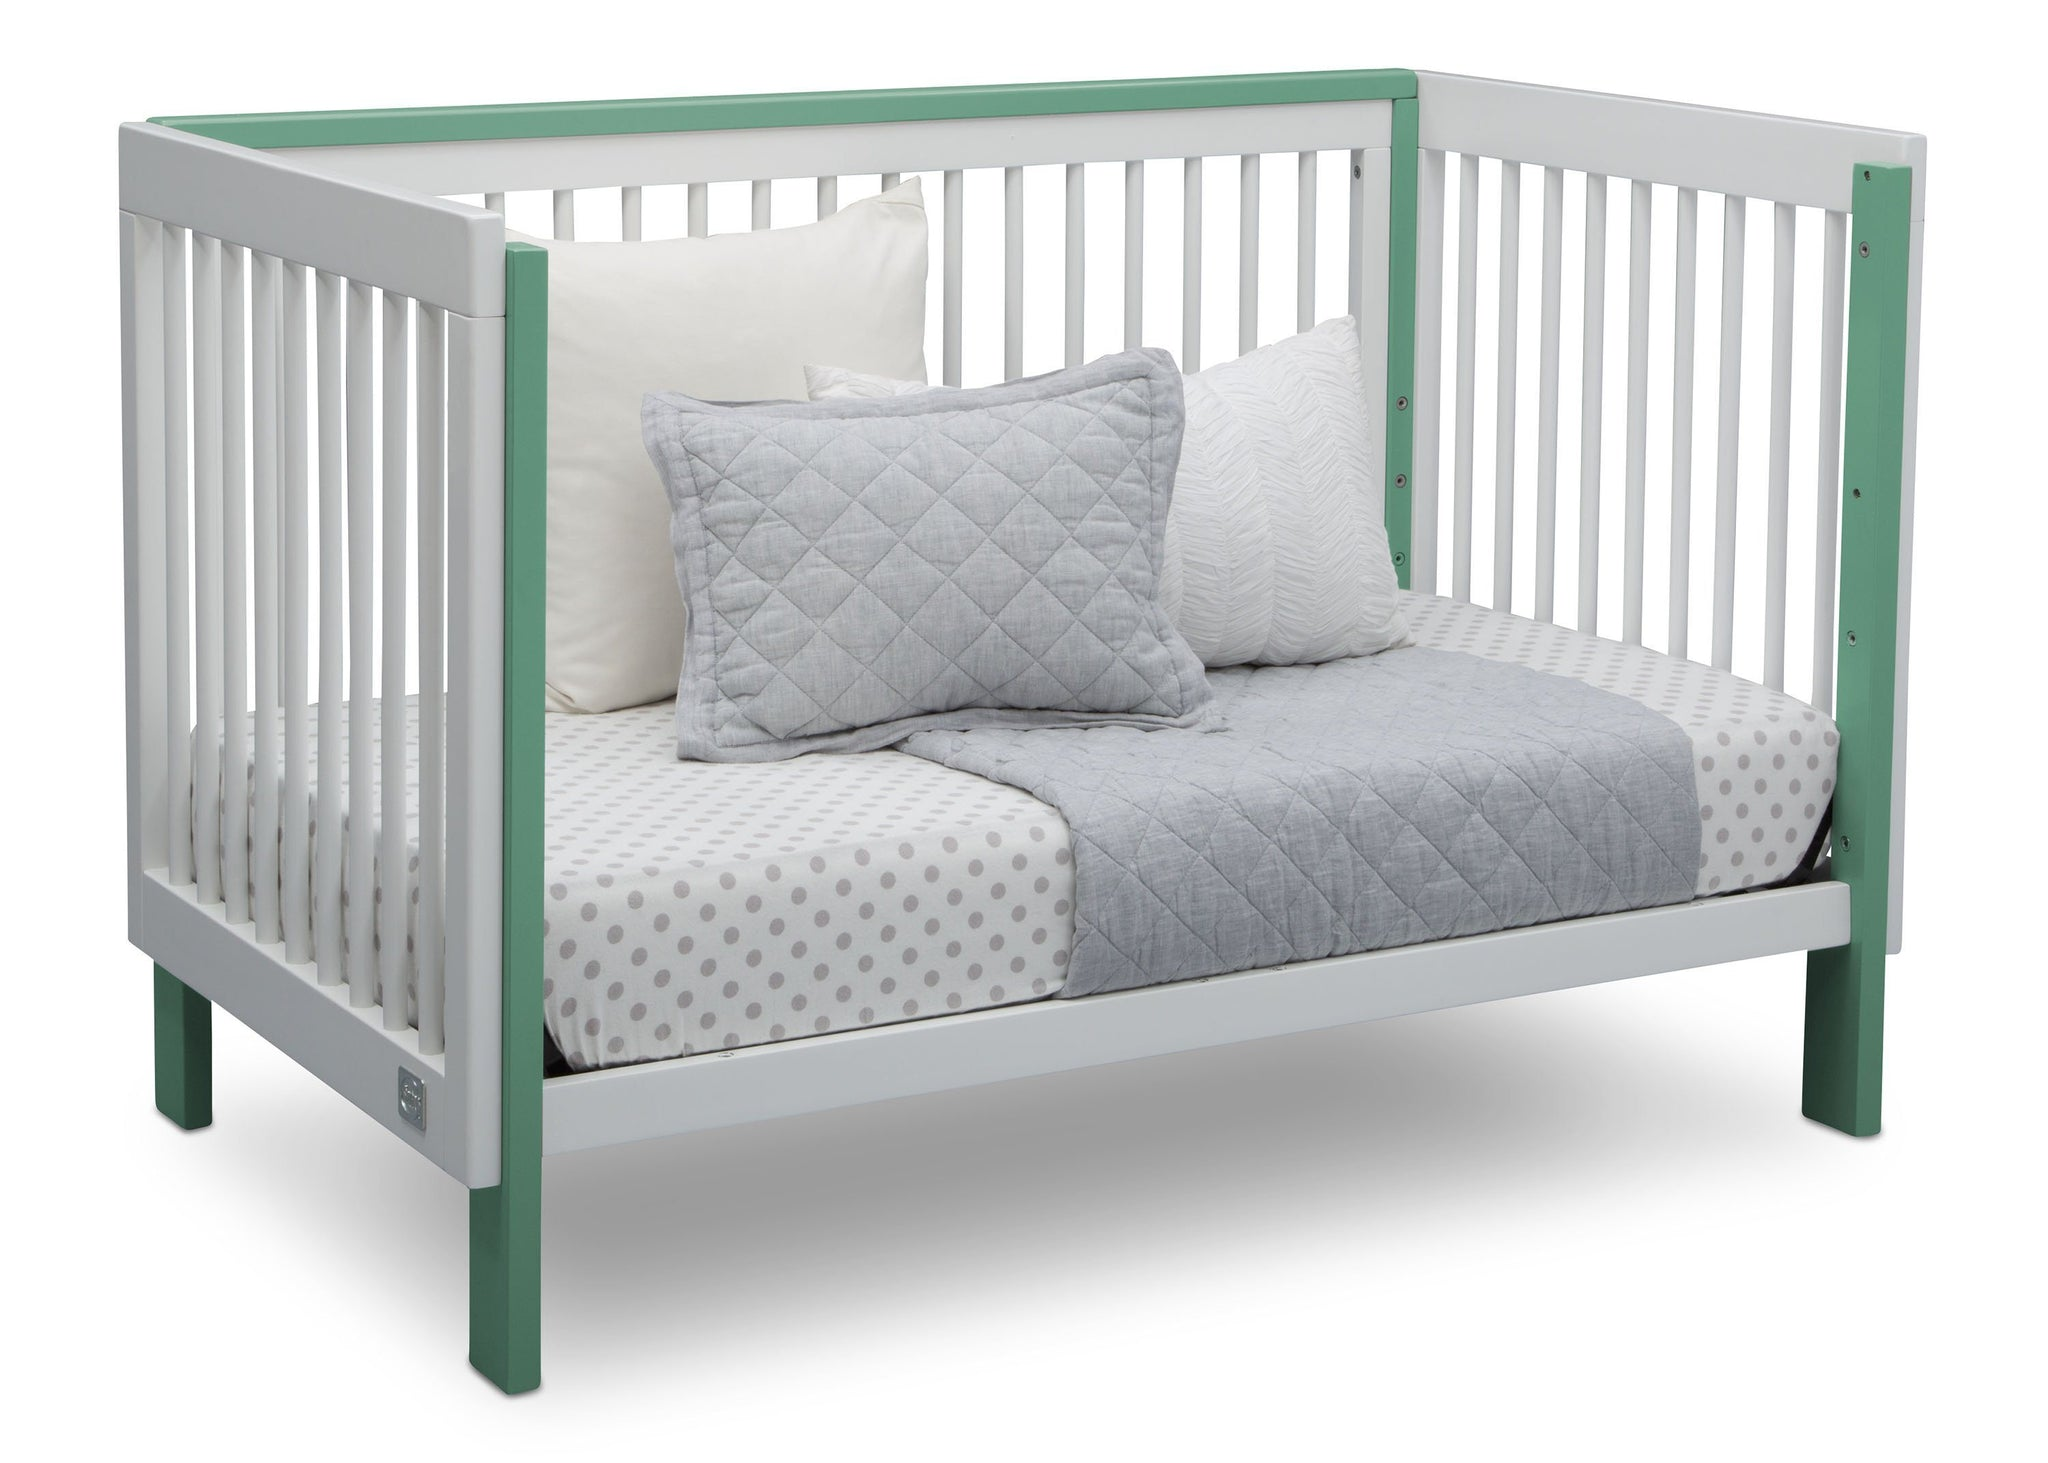 Serta Fremont 3-in-1 Convertible Crib Bianca with Aqua (134) Daybed a5a